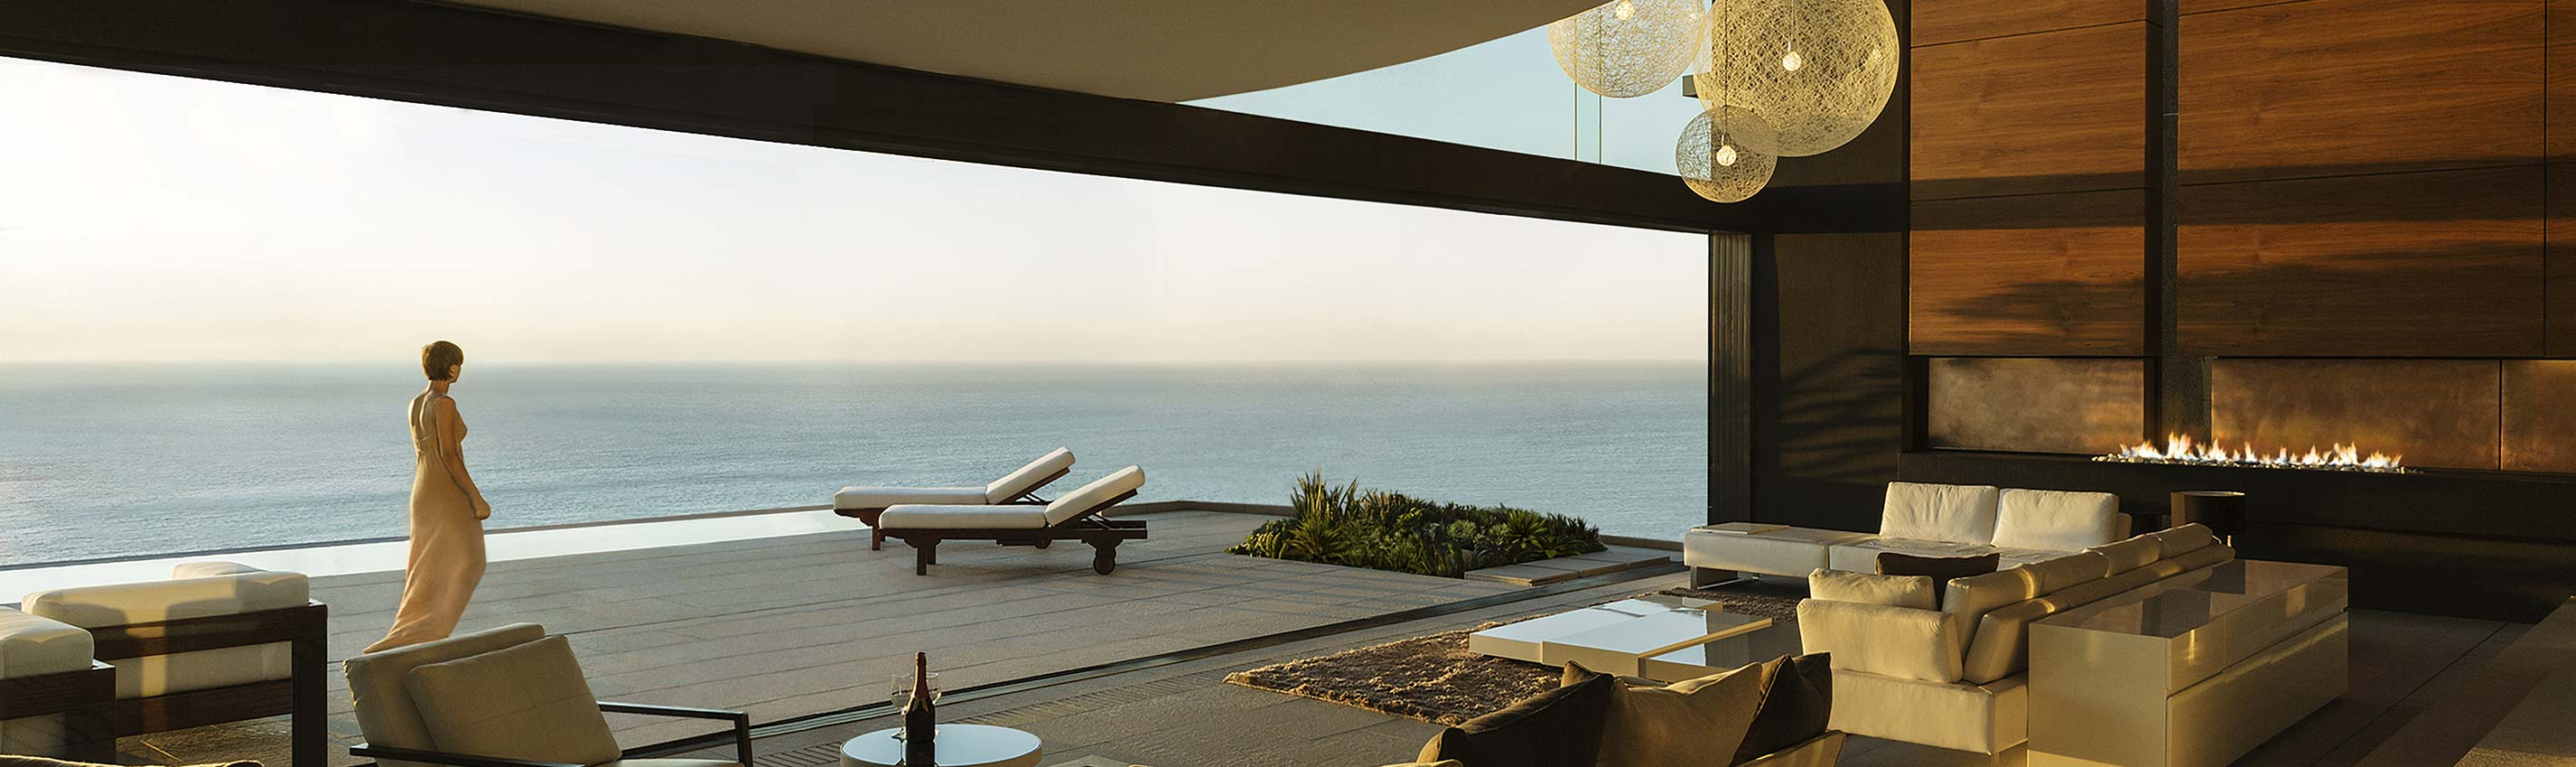 woman walking on the terrace of a luxury home overlooking the ocean